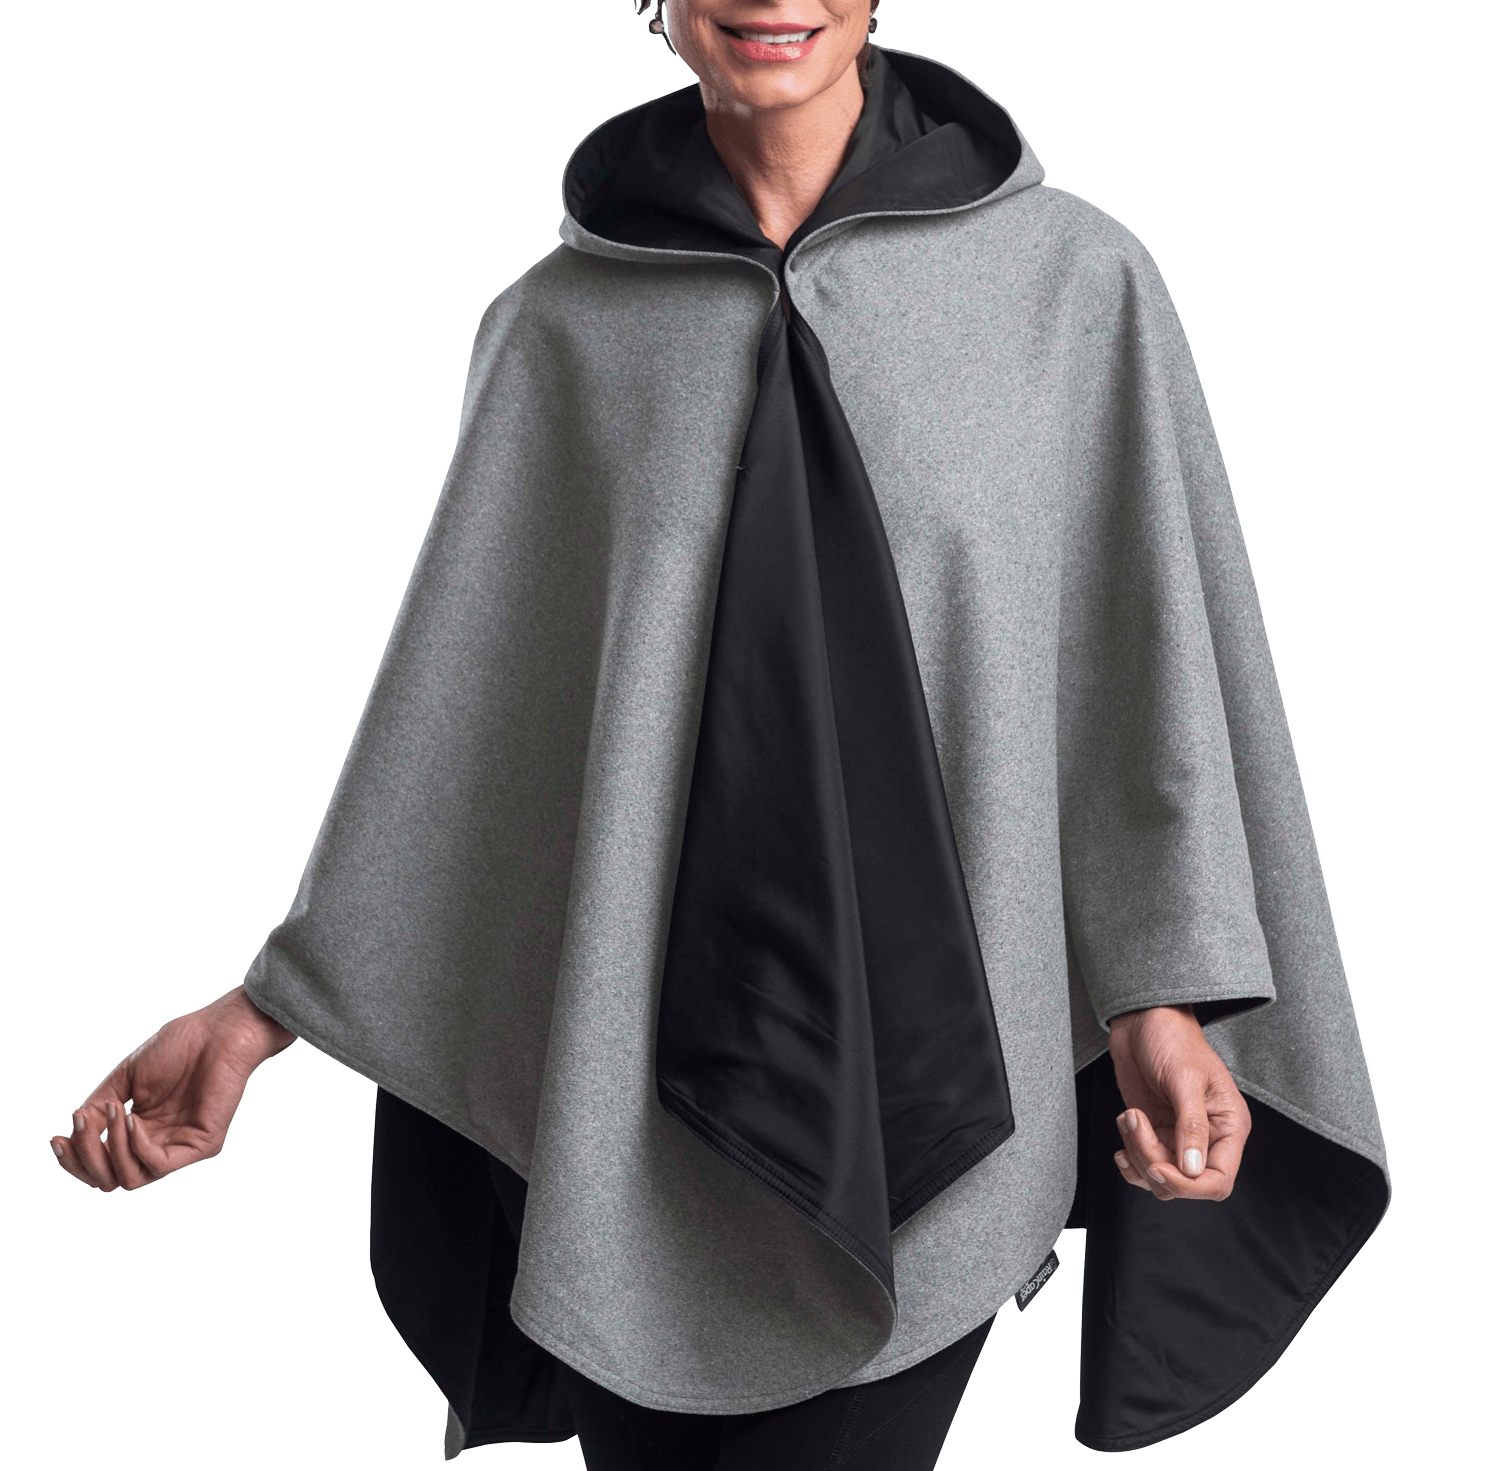 Woman wearing a WarmCaper Warm Pewter Grey/Black Rainproof rain and travel cape by RainCaper